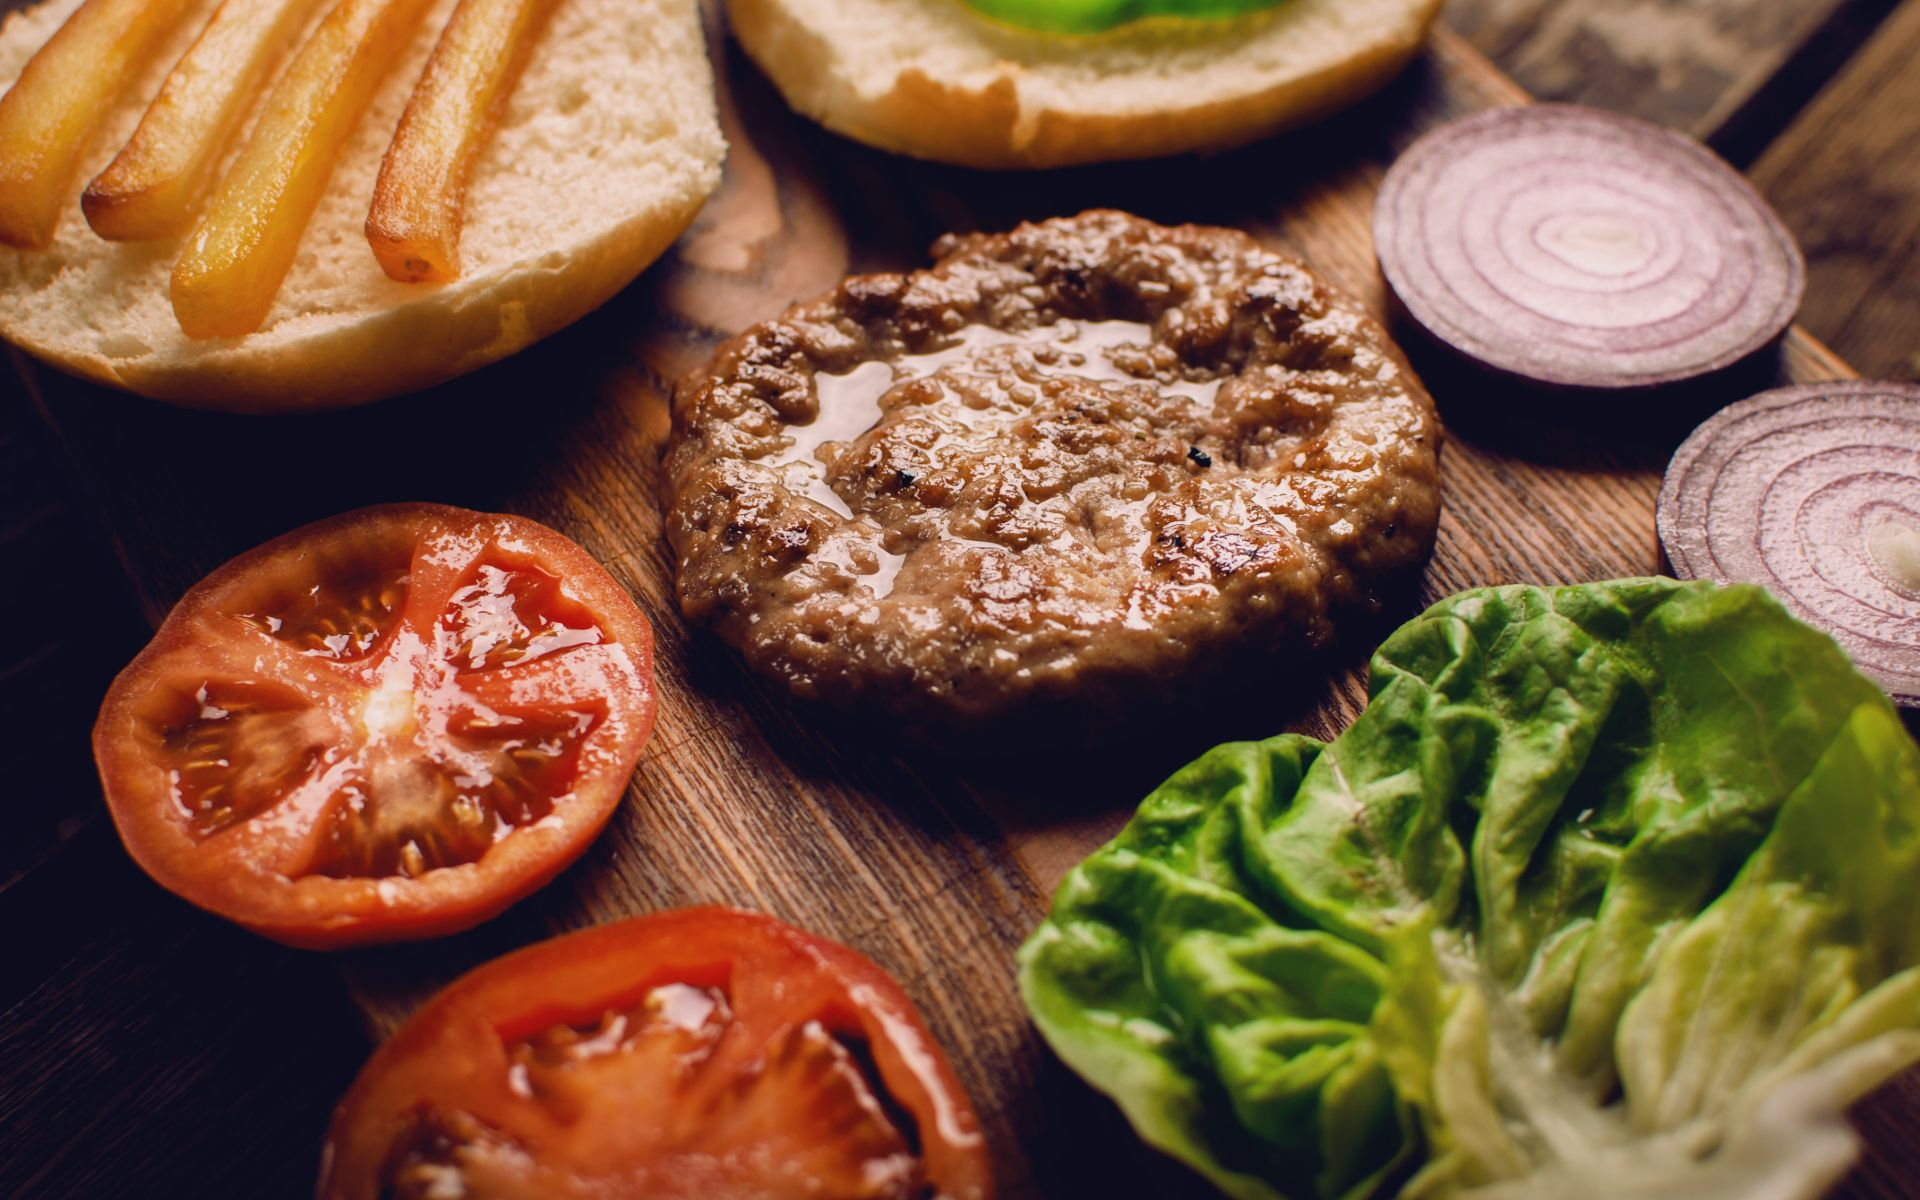 burger with tomato, lettuce and bun on wood